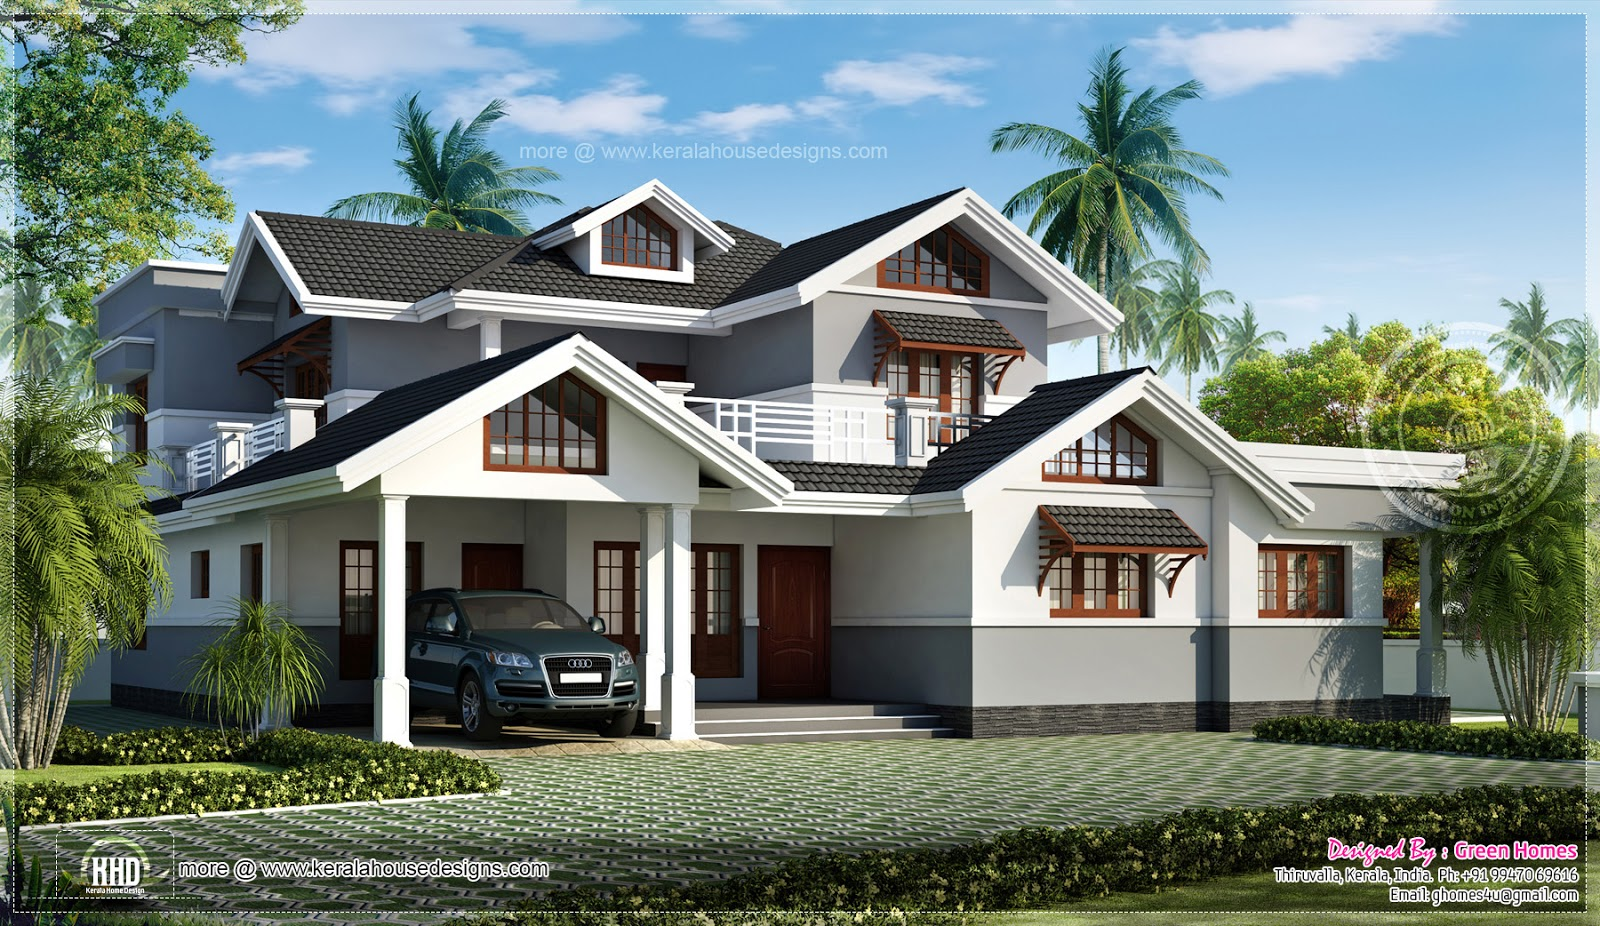 Luxurious kerala villa with sloping roof home elevation for Homes plus designers builders inc